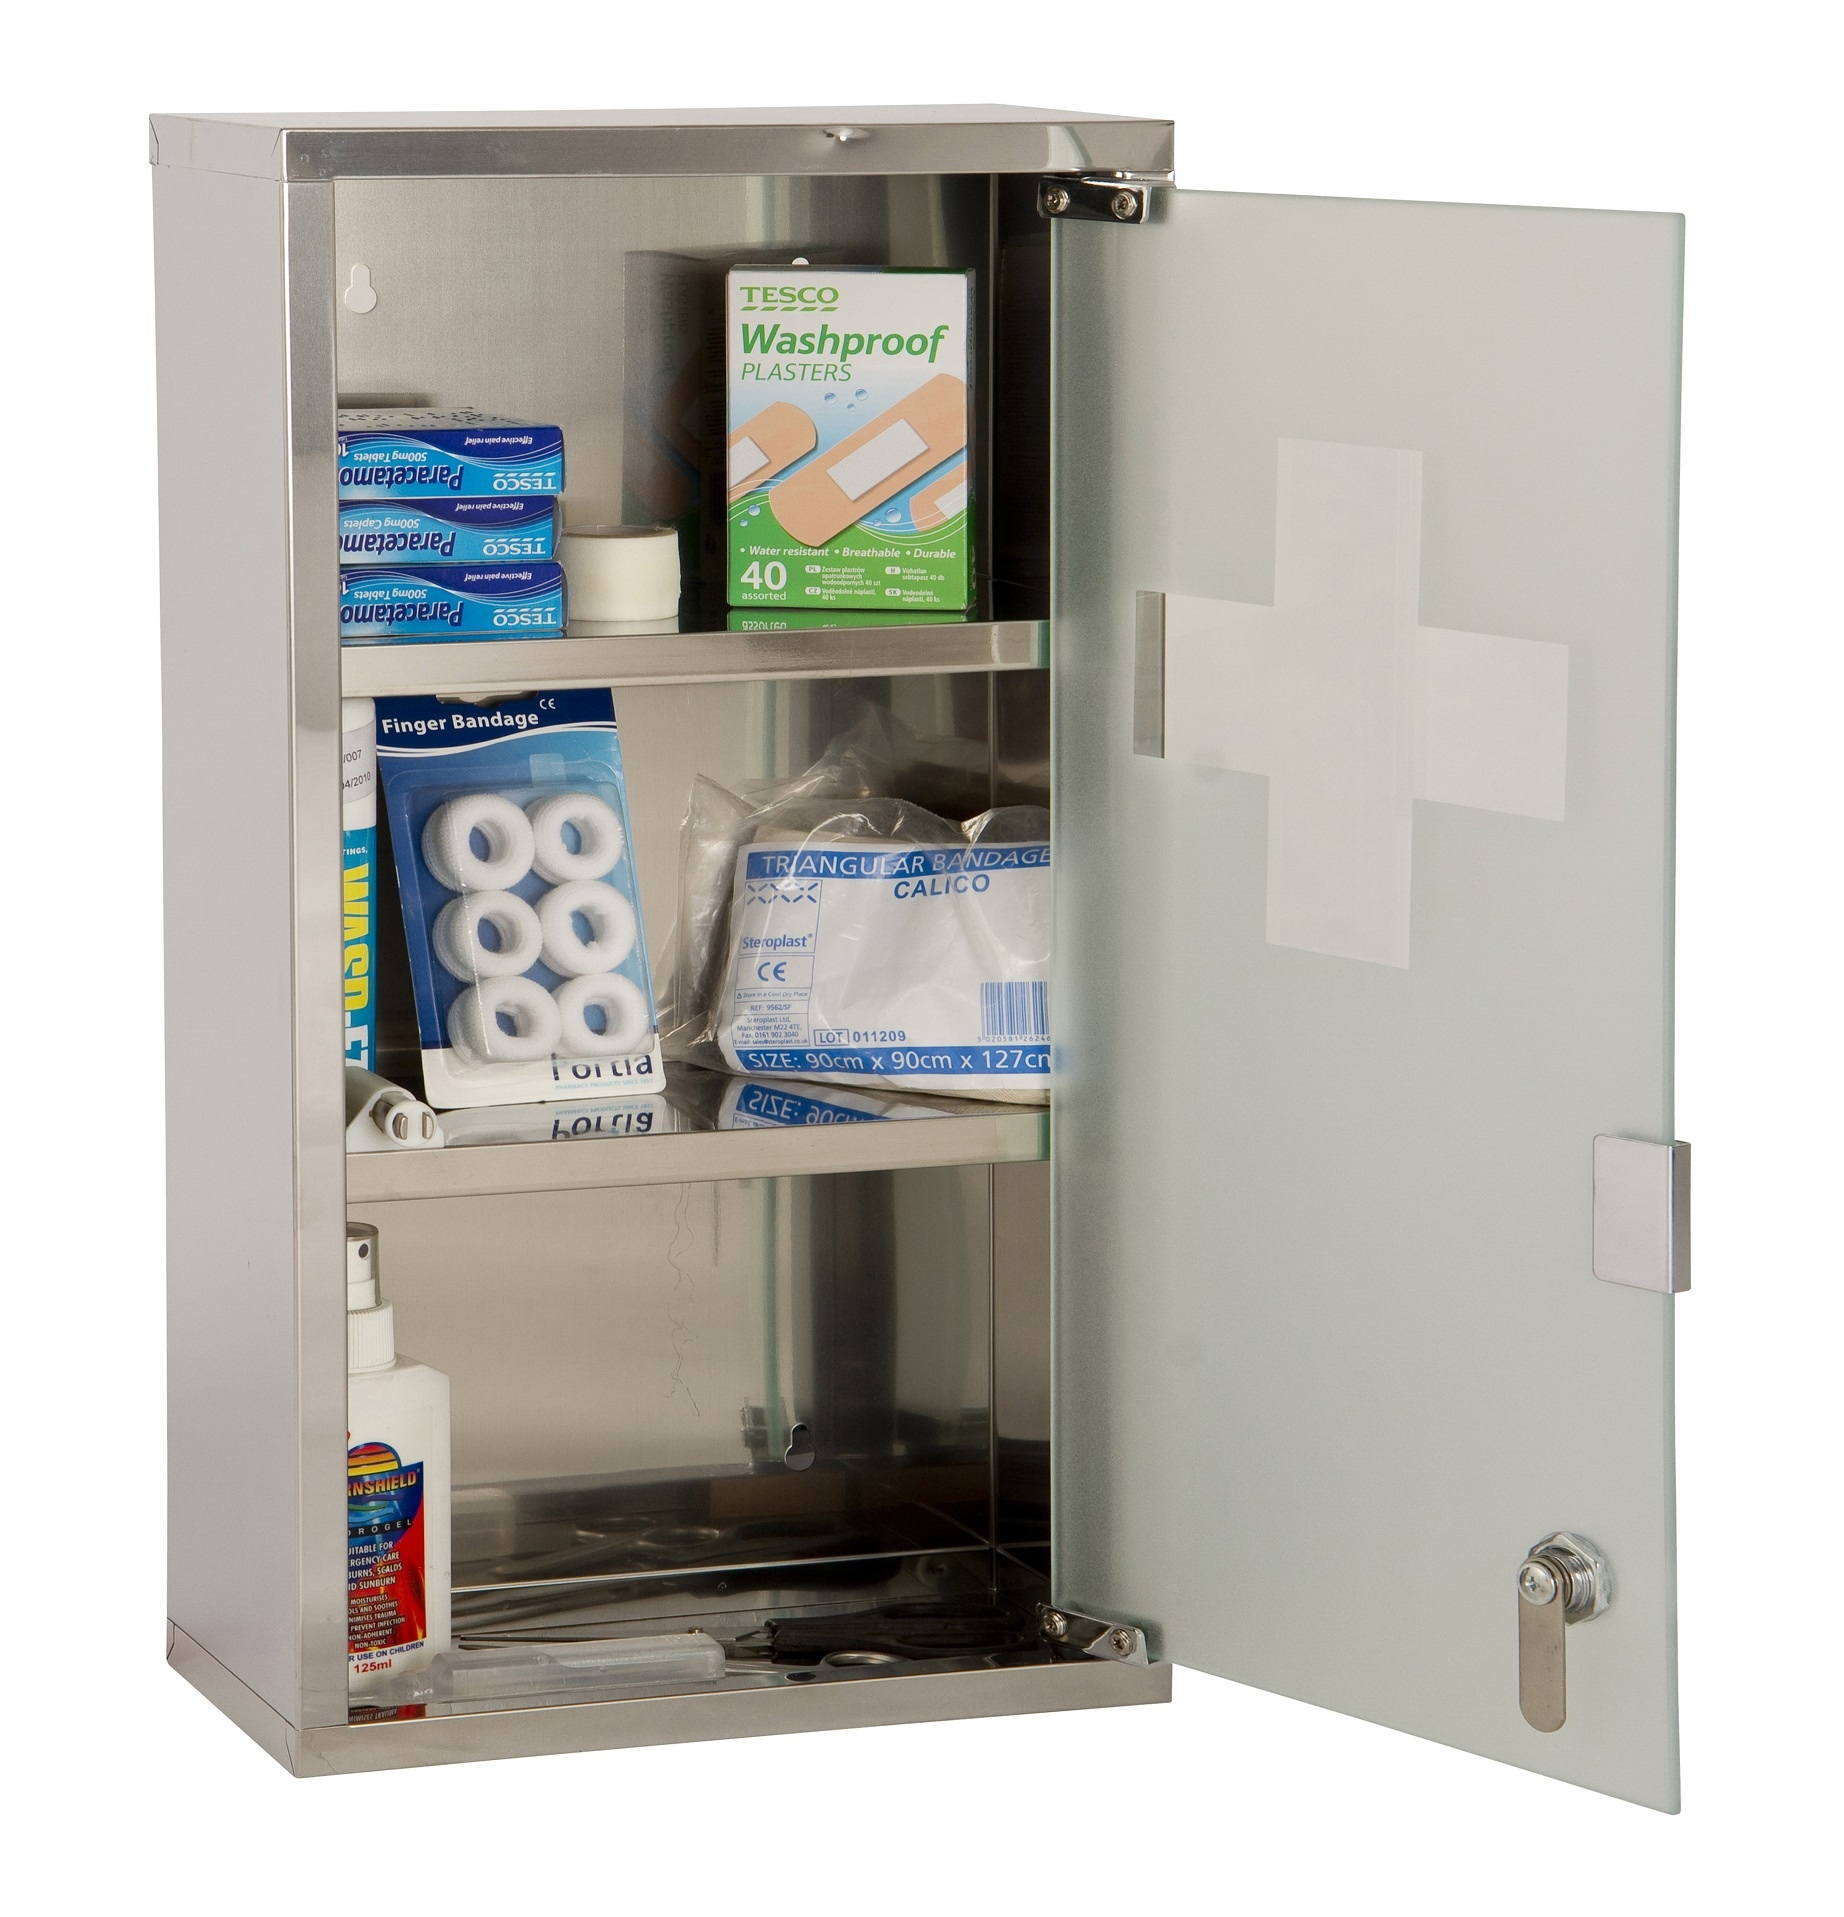 Small Room Box Kit Dhw021: Wall Mounted Lockable 2 Keys Large Medicine Cabinet First